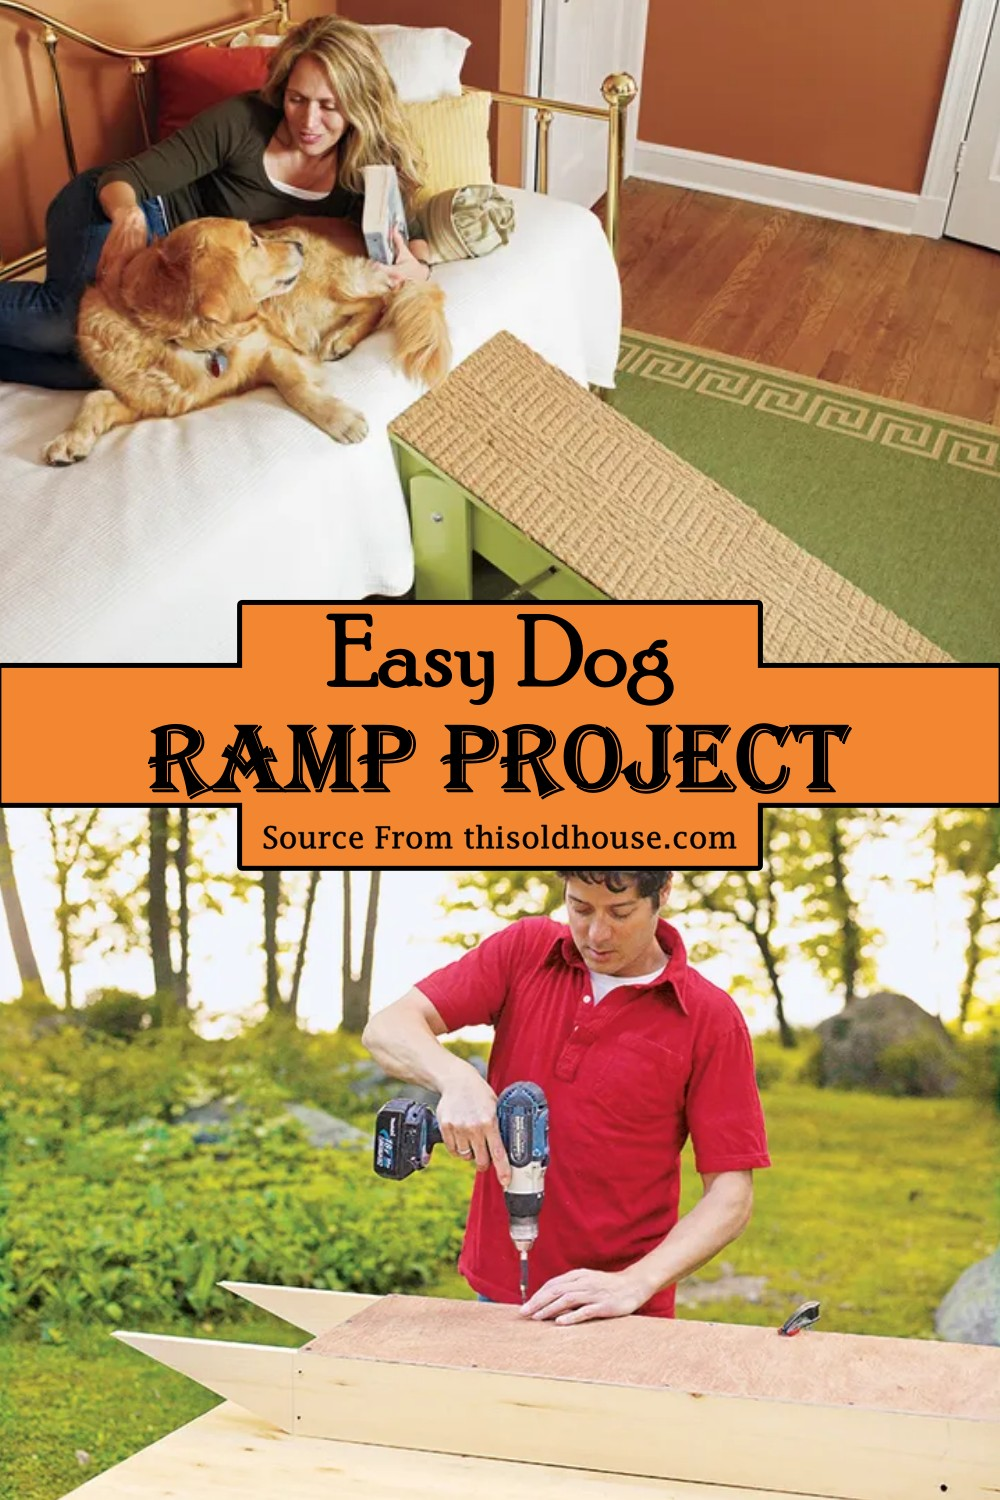 Easy Dog Ramp Project